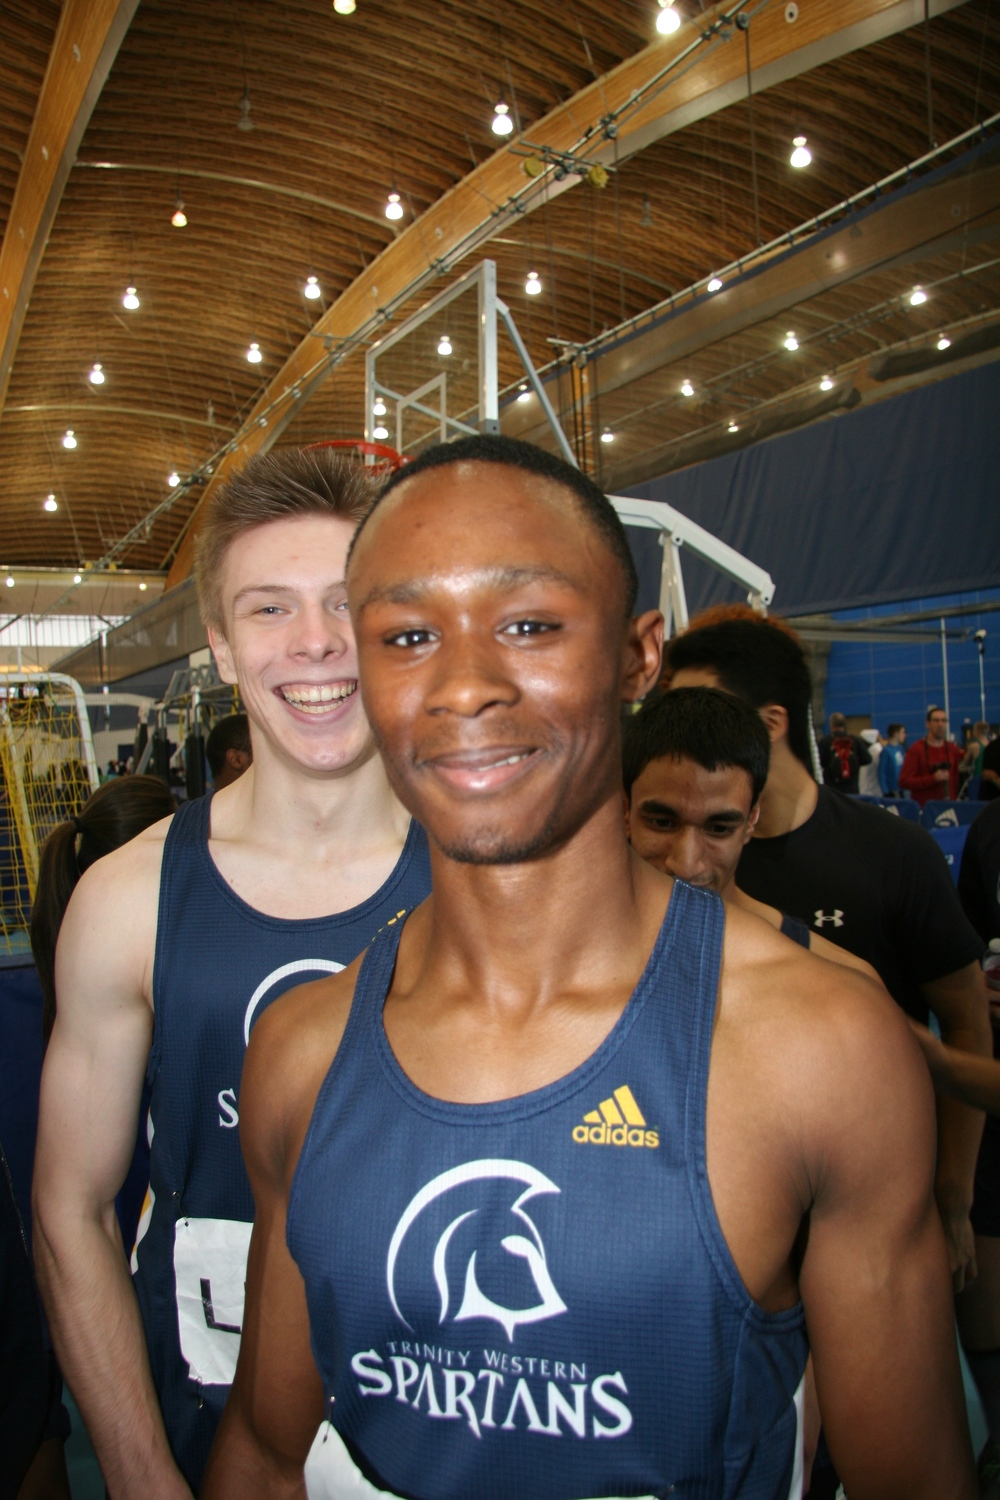 Nathan George  with James Linde behind at 2014 Jerome Indoor